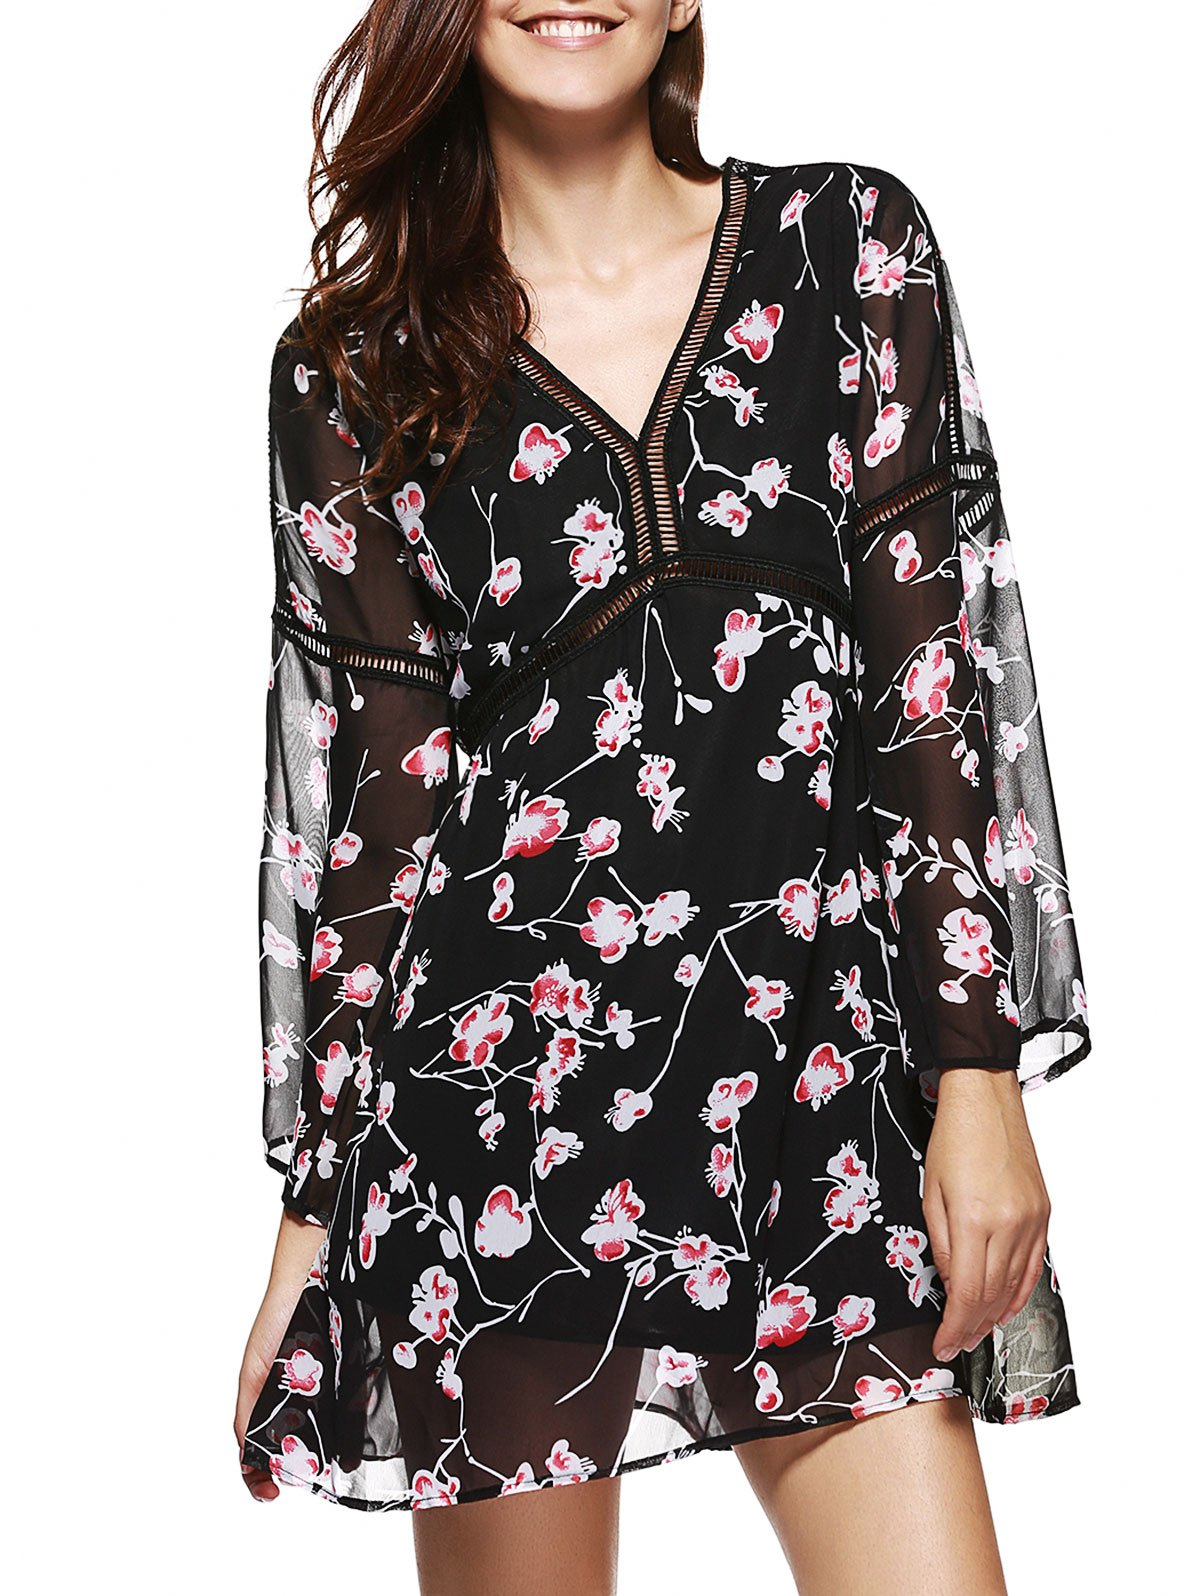 V Neck Floral Print Chiffon Dress - BLACK 2XL